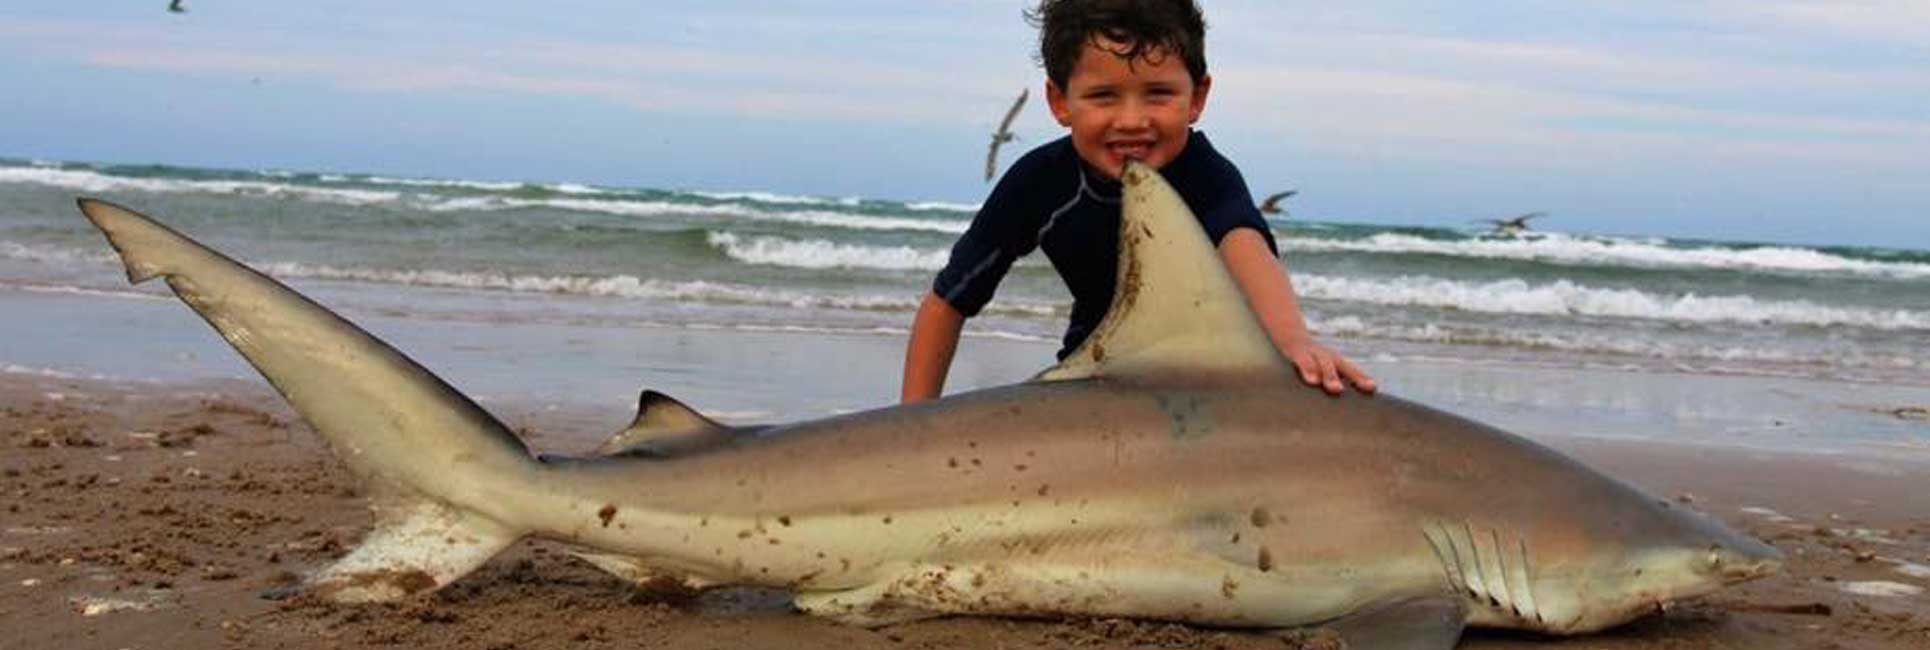 shark caught by fishing guide on beach with child